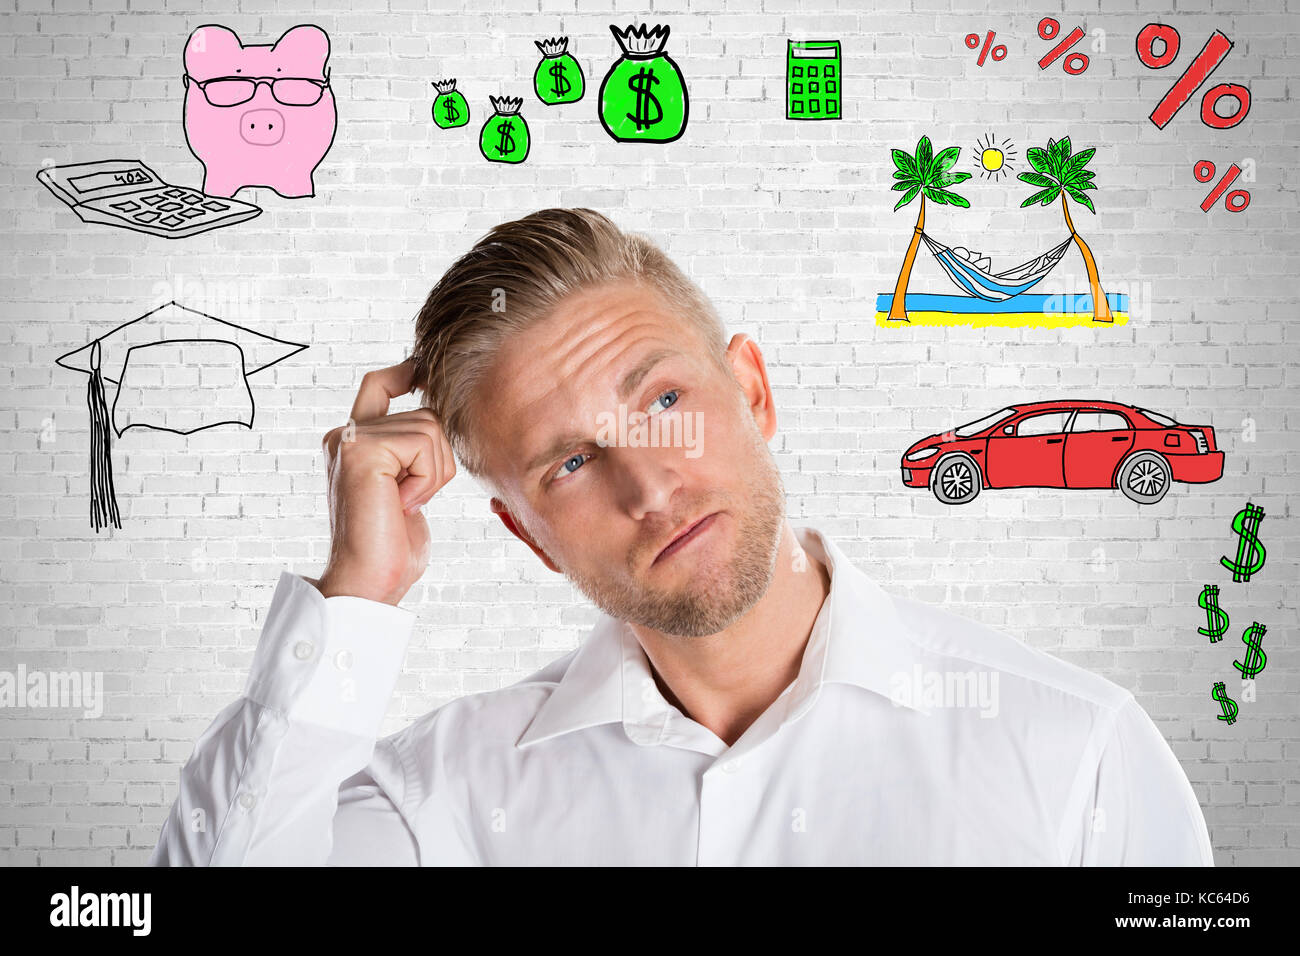 Contemplated Business Man Thinking About Future Against Brick Wall - Stock Image